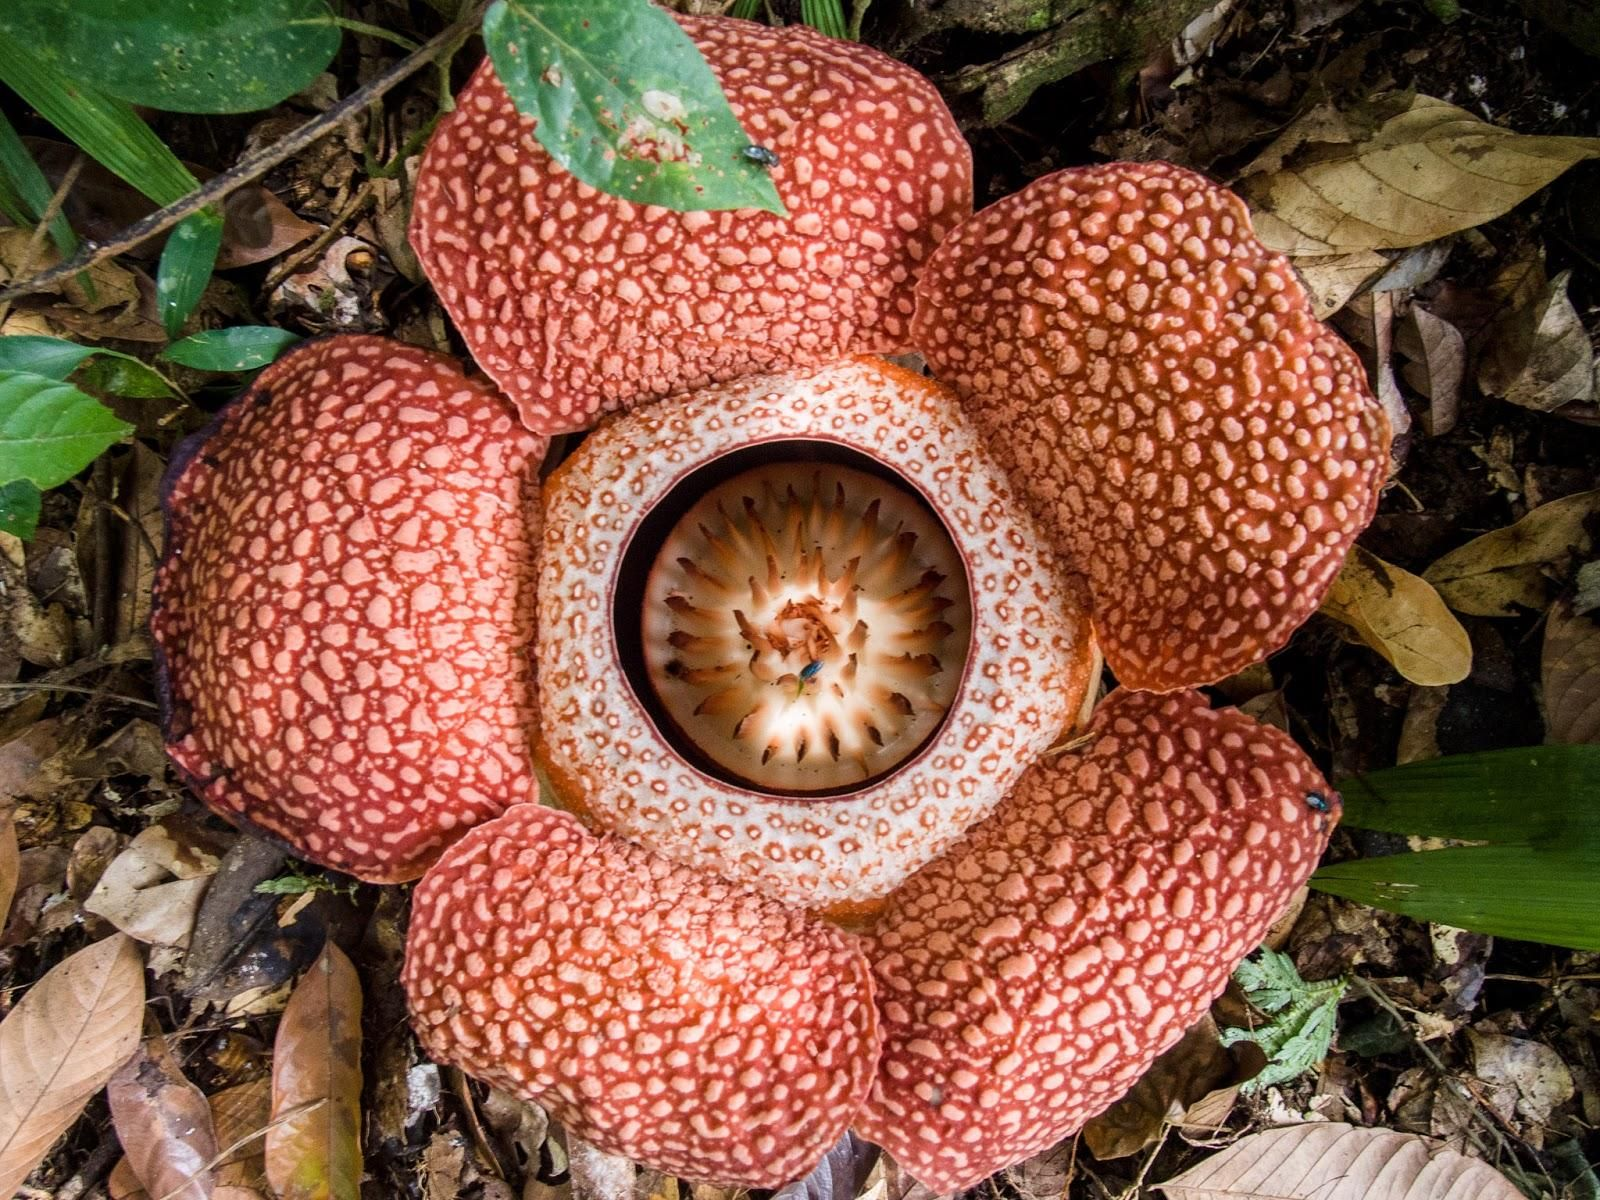 Corpse Flower Rafflesia Keithii The Corpse Flower Is Rare And Can Only Be Found In The Rainforests Of Indonesia The Corpse Flower Is A Pa Cicek Renkler